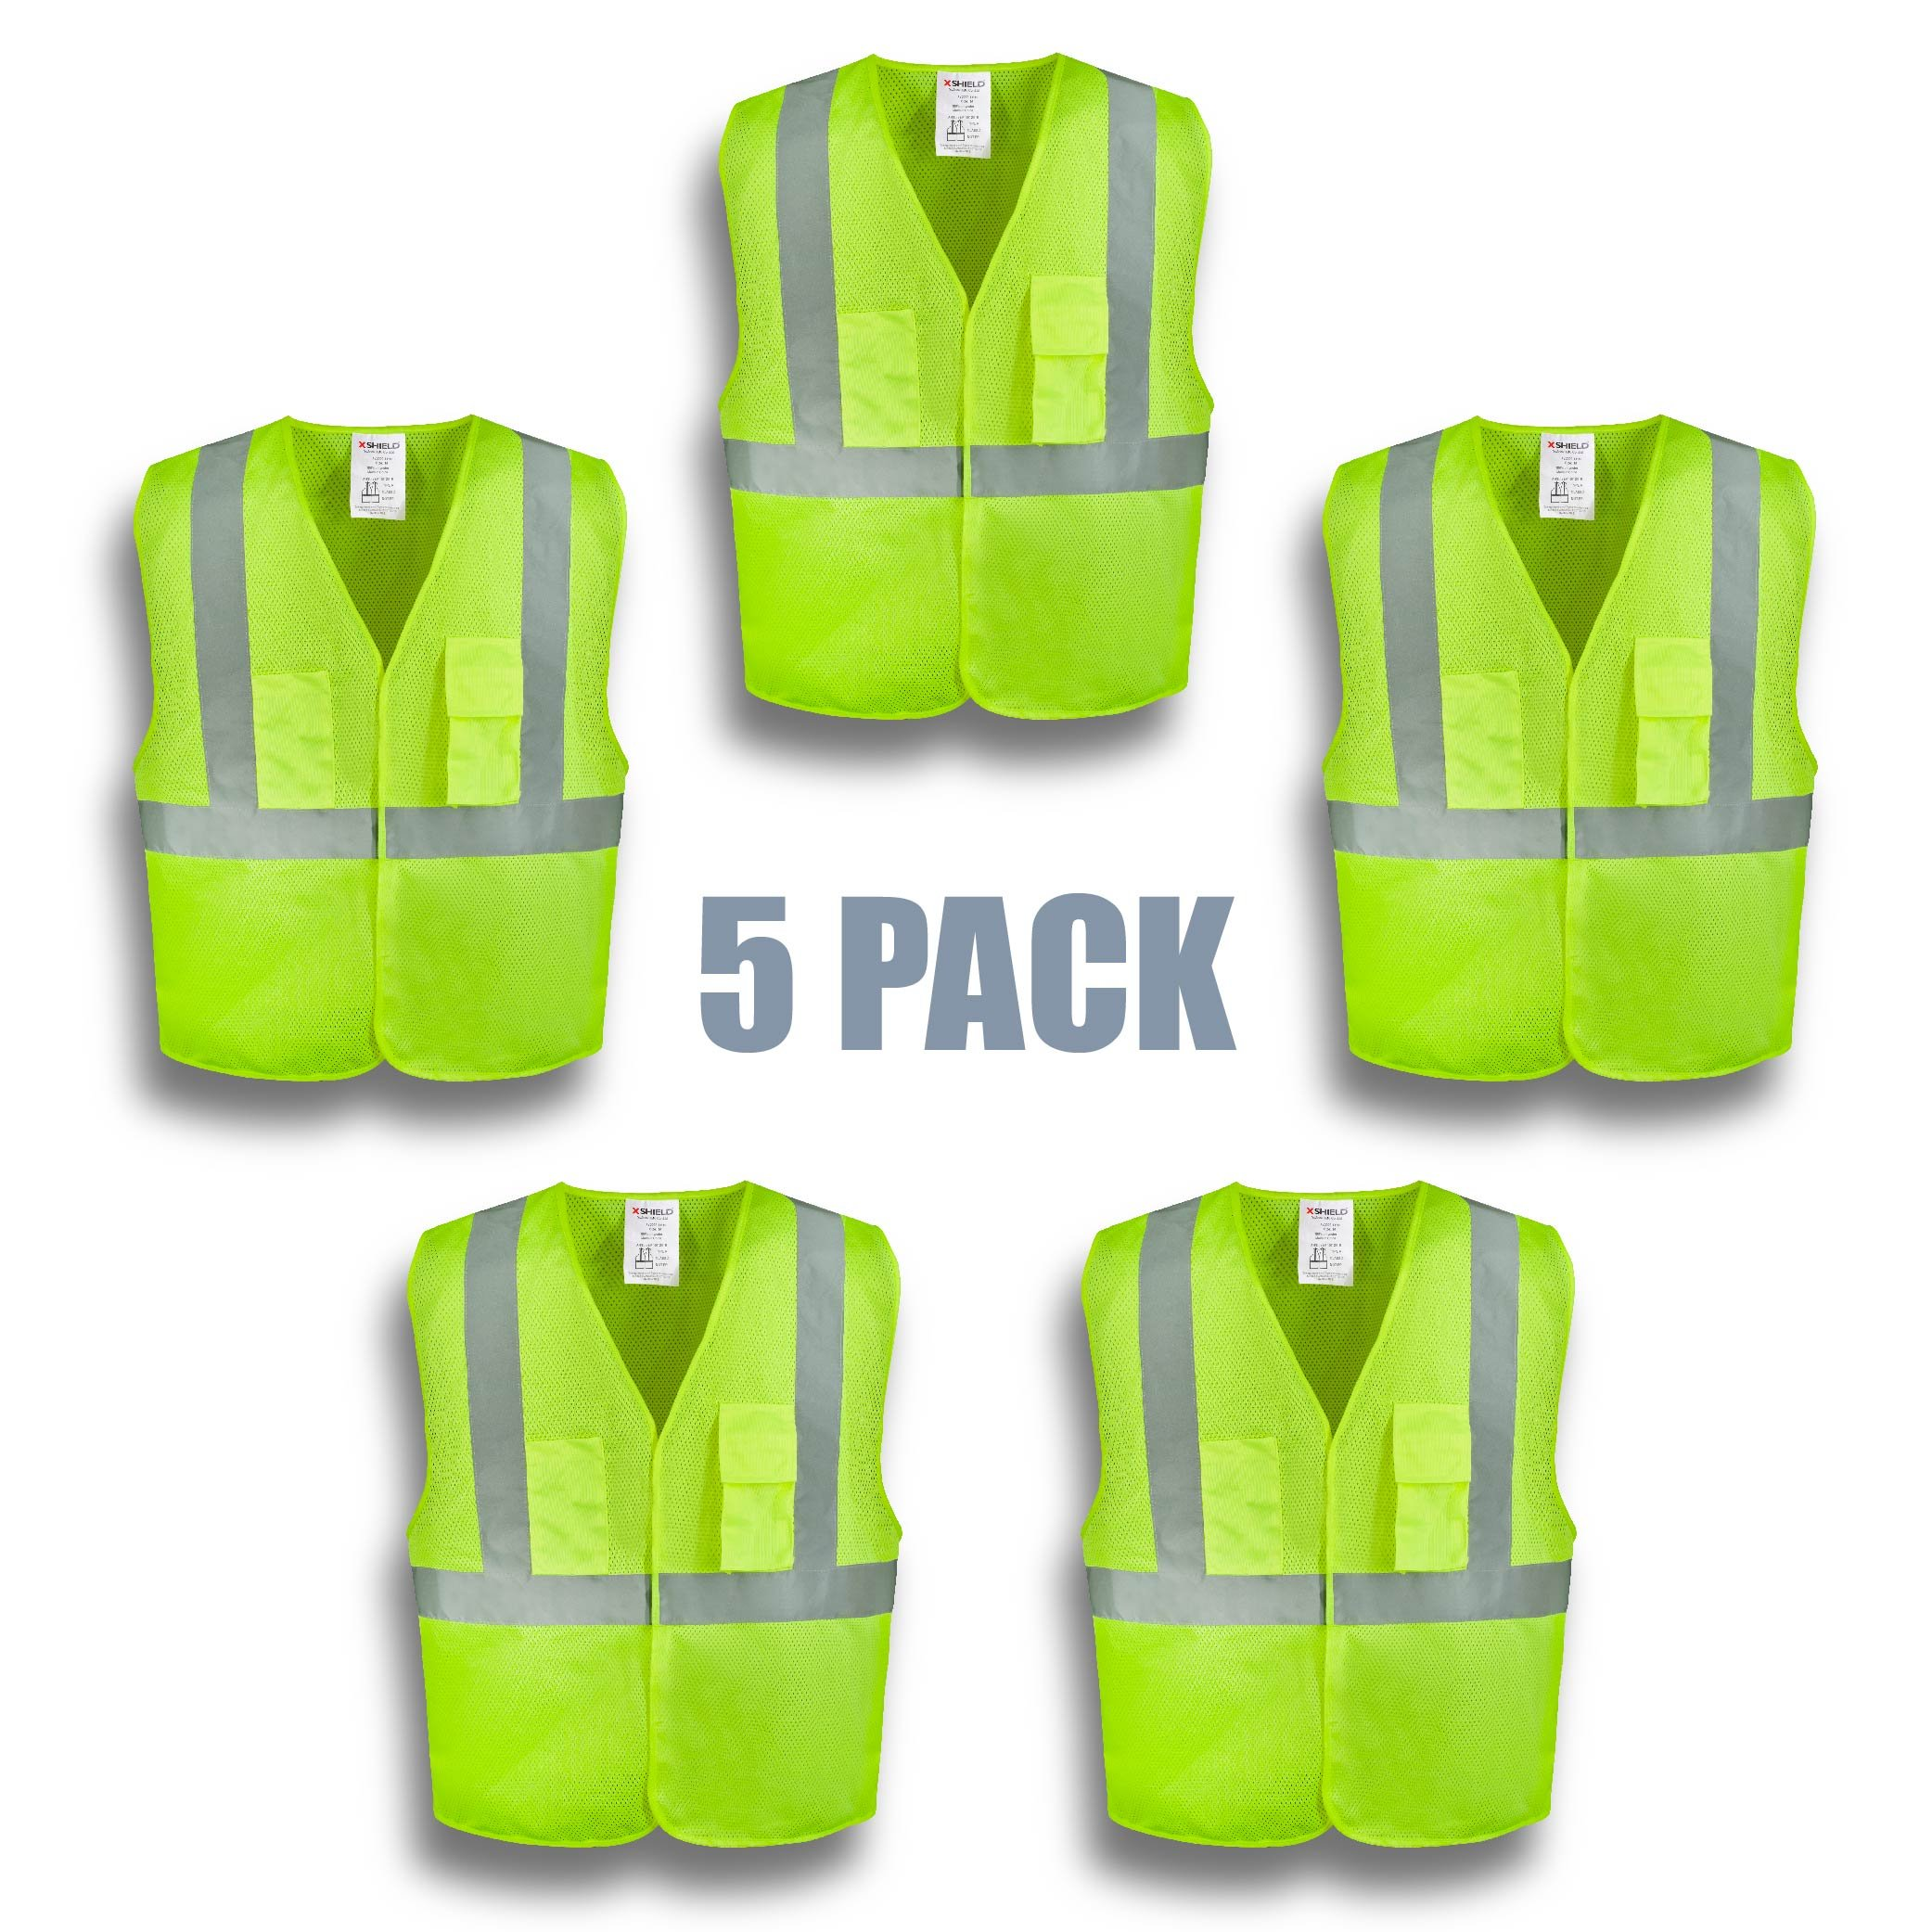 XSHIELD XS0003,High Visibility Safety Vest with Silver Stripe,ANSI/ISEA 107-2015 Type R Class2 Not FR,Pack of 5 (XL, Yellow)